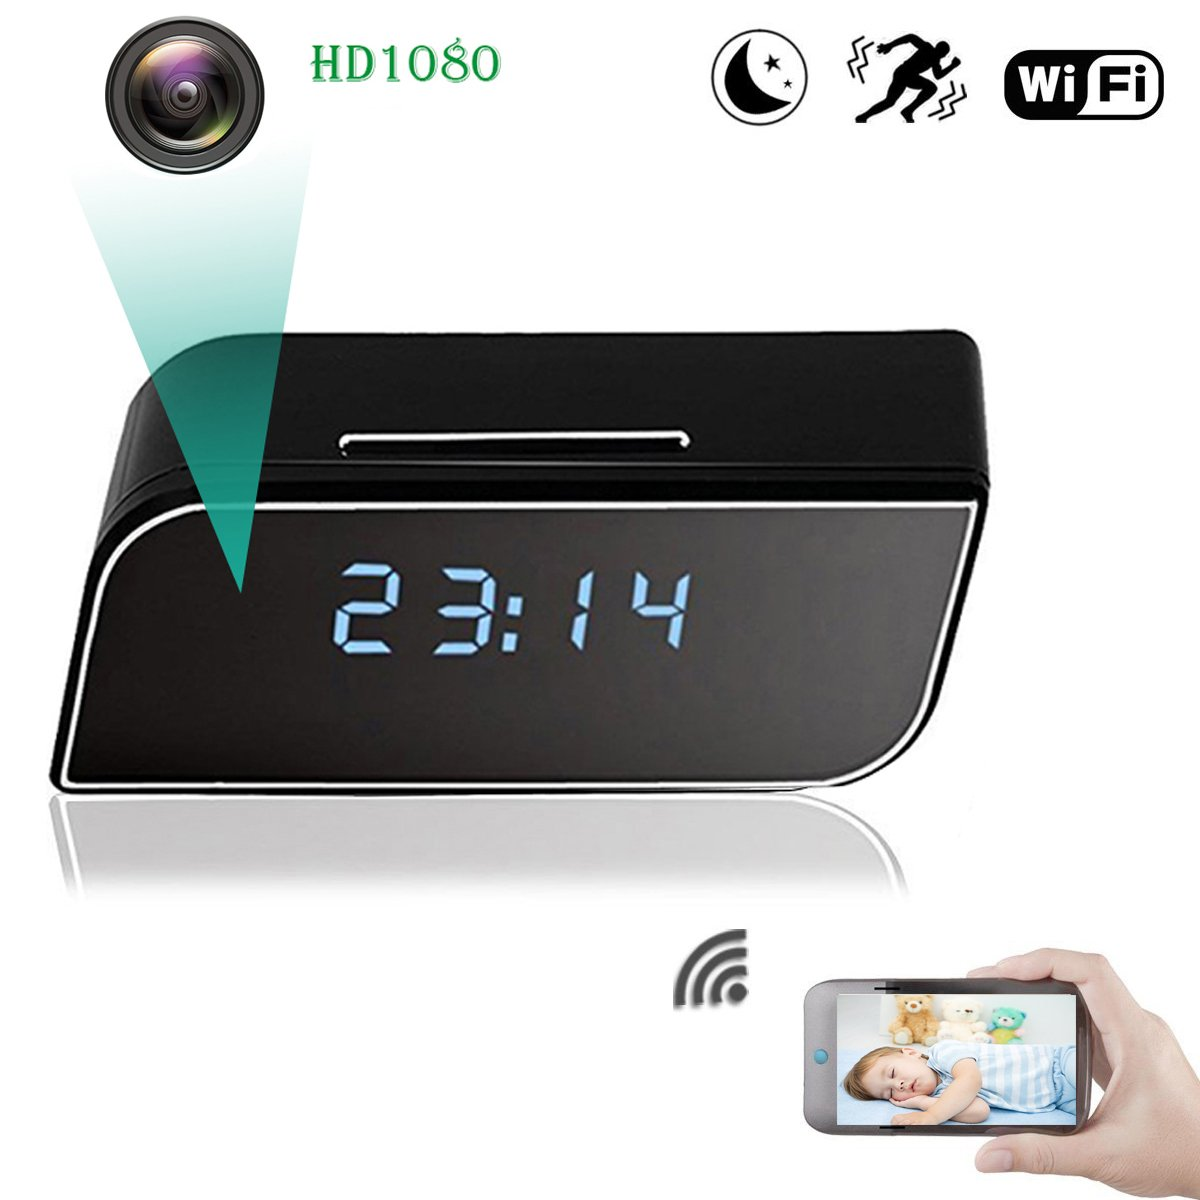 WiFi Spy Hidden Camera, ZDMYING HD1080 Alarm Clock Security Camera Motion Detection Night Vision loop Recording, Up to 64G Storage SD Card for Nanny Home Office (iPhone, Android and PC)